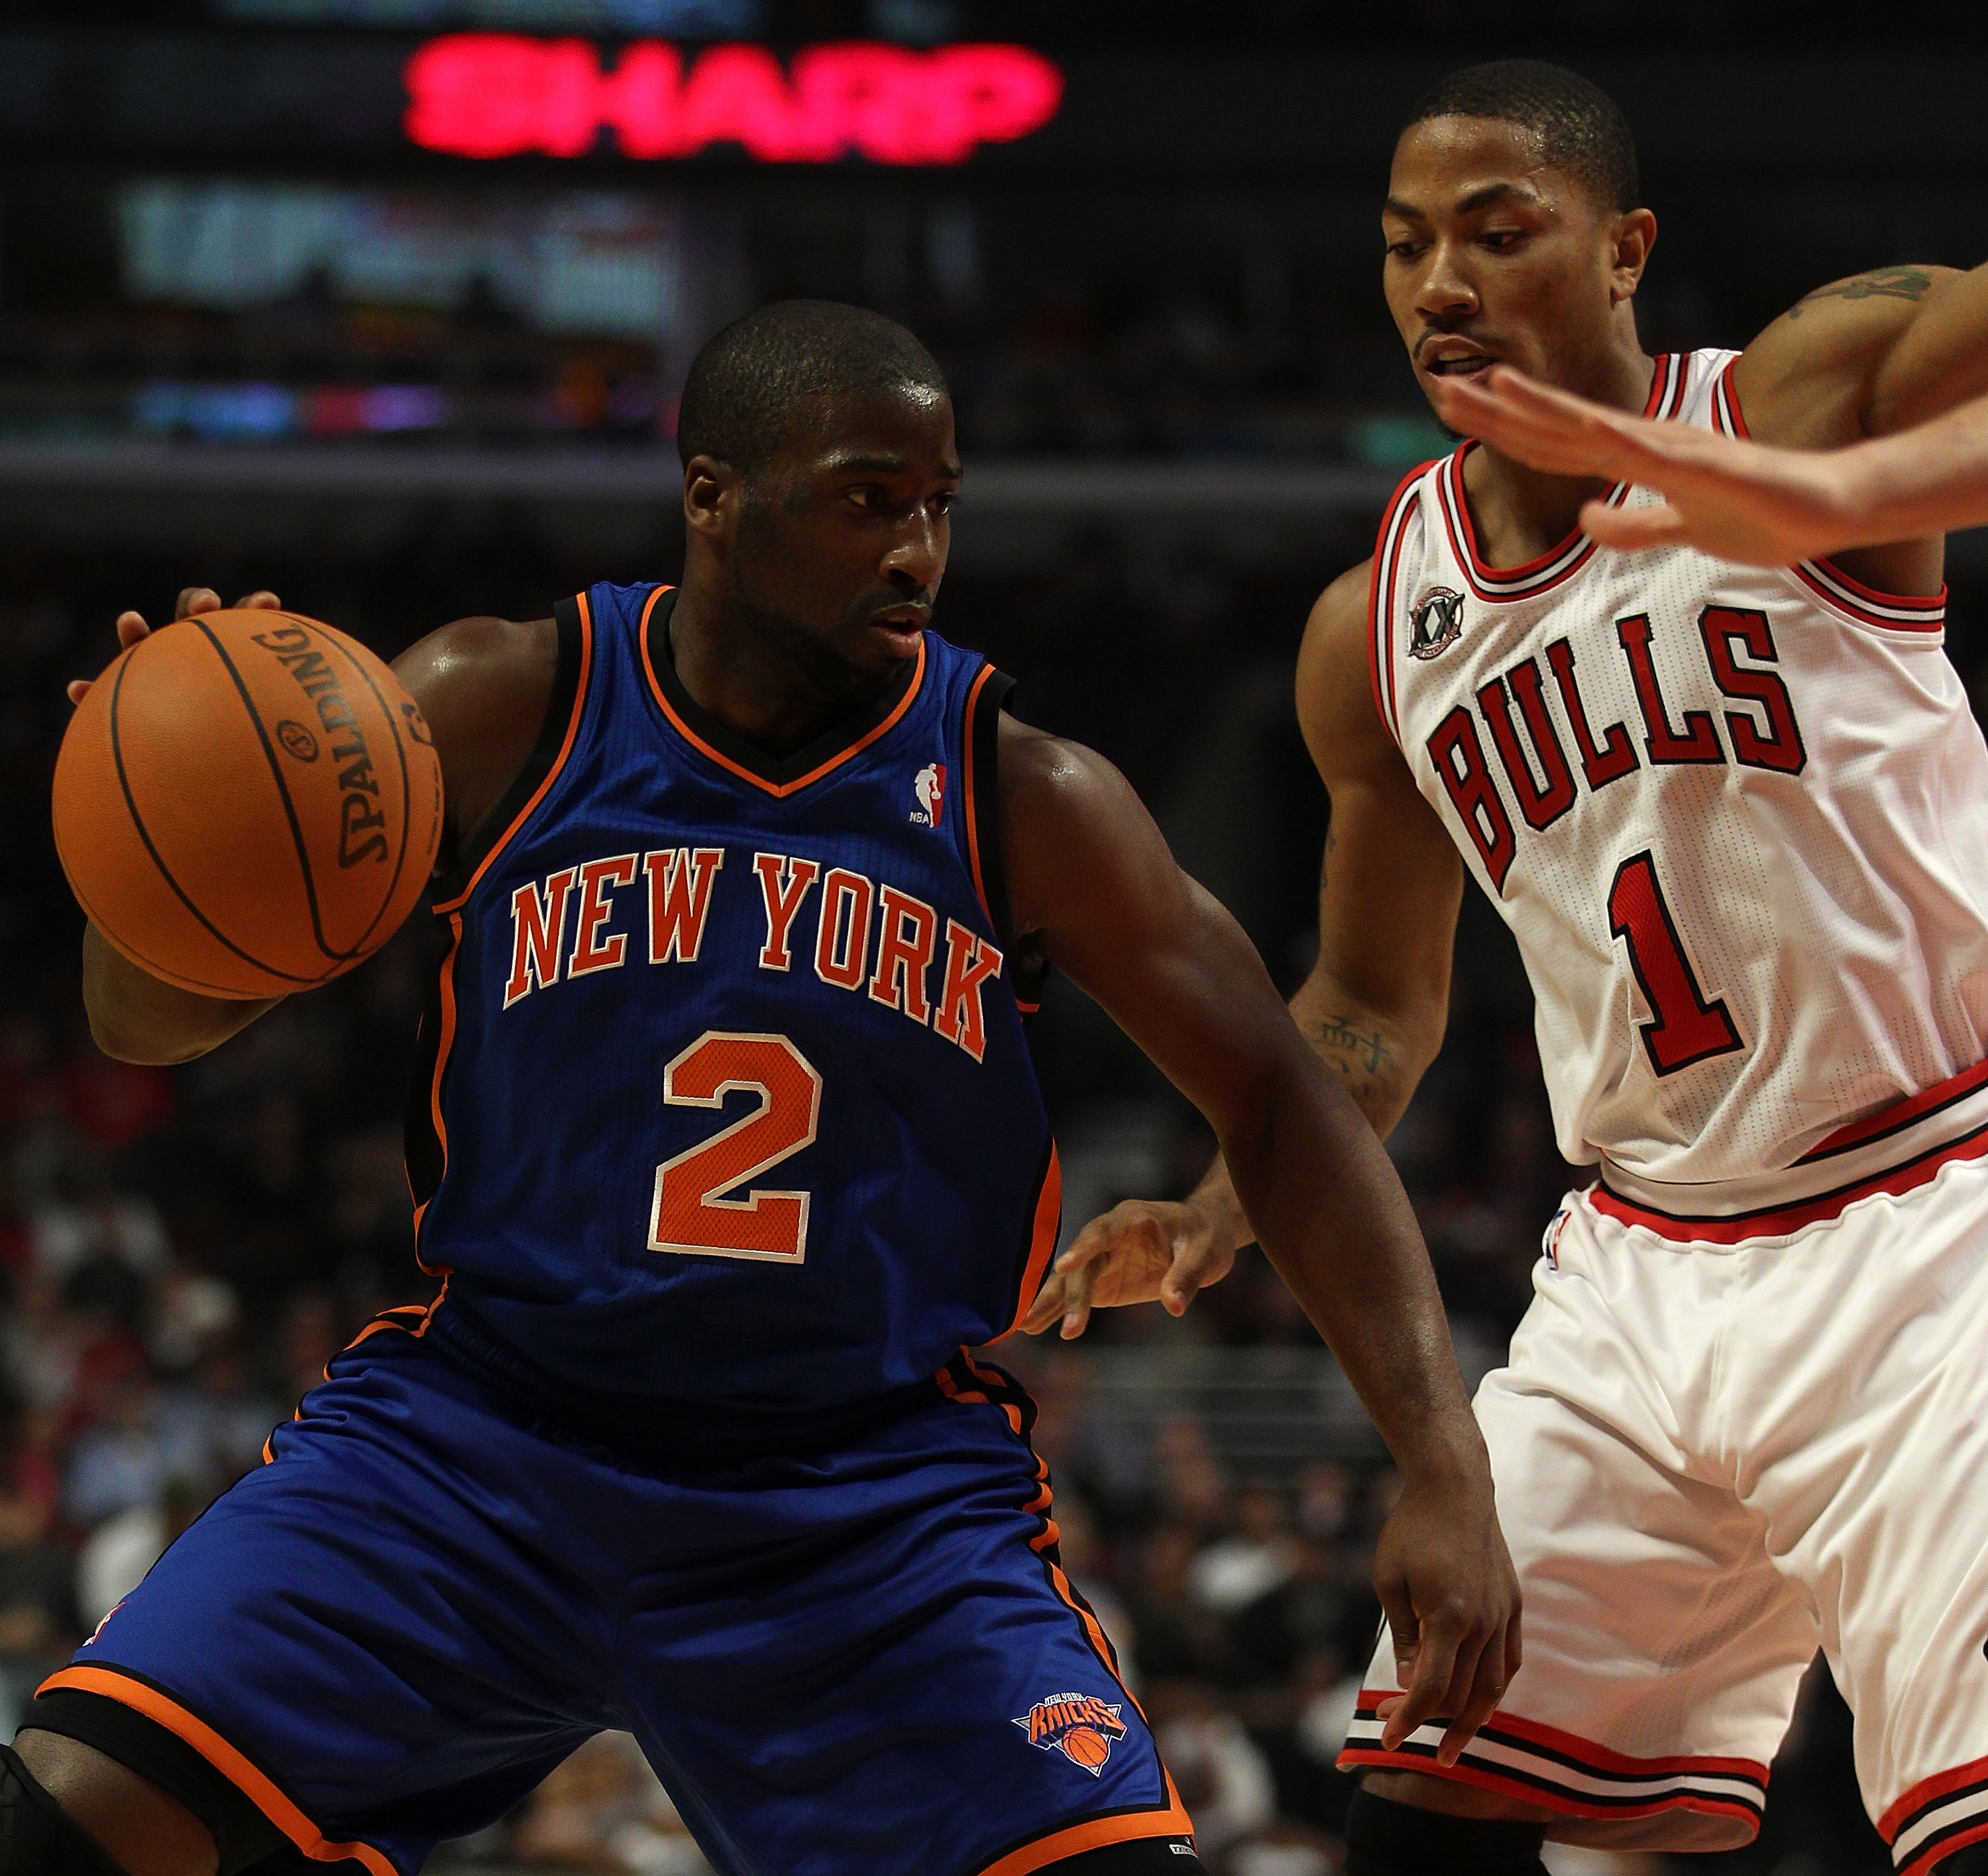 CHICAGO - NOVEMBER 04: Raymond Felton #2 of the New York Knicks moves against Derrick Rose #1 of the Chicago Bulls at the United Center on November 4, 2010 in Chicago, Illinois. NOTE TO USER: User expressly acknowledges and agrees that, by downloading and